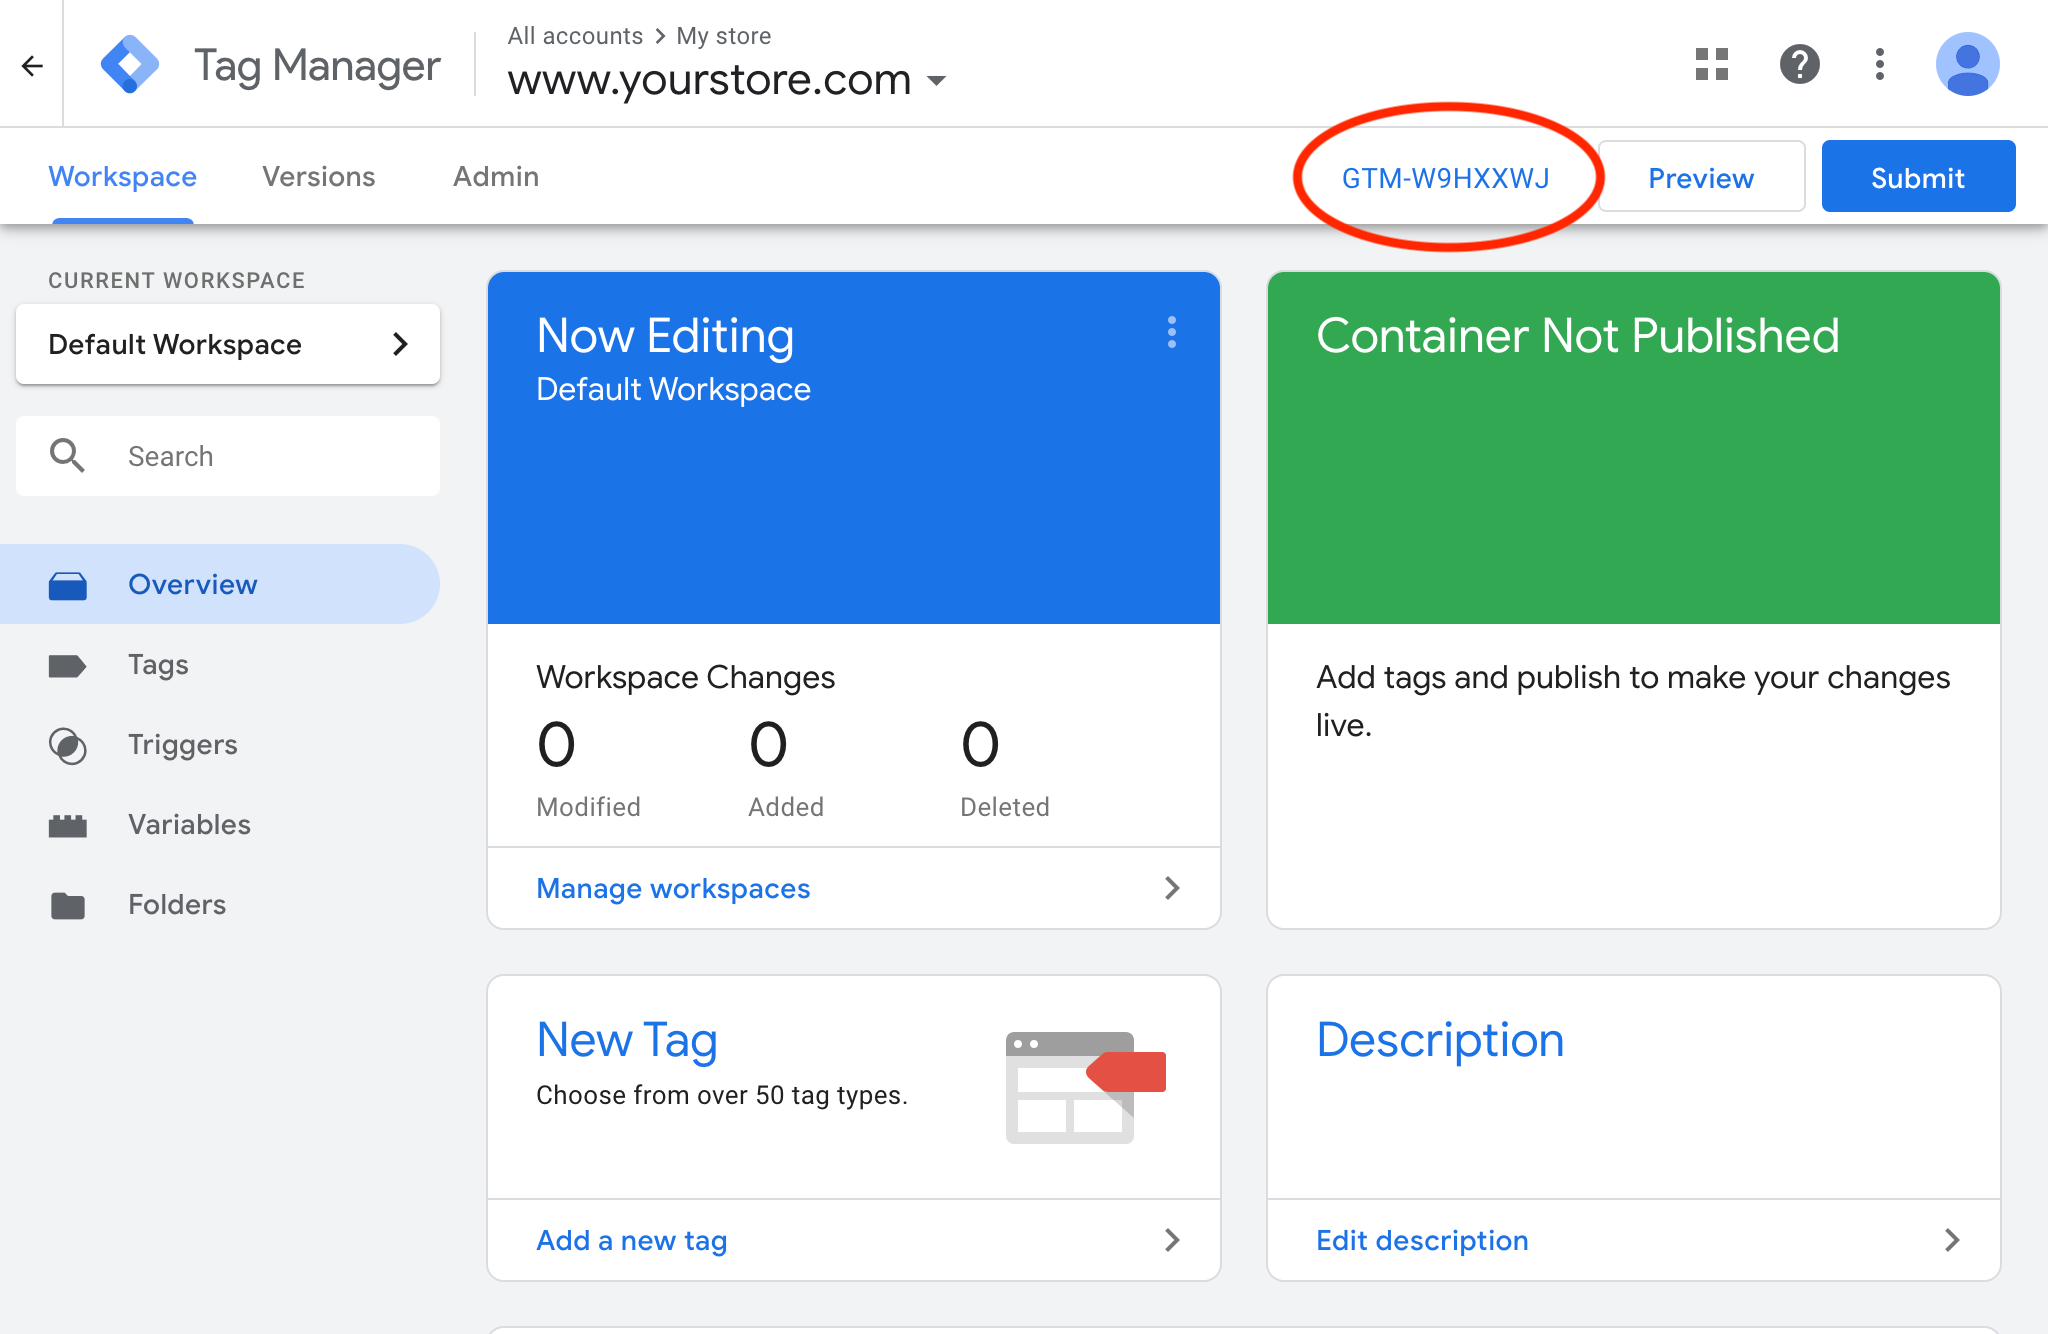 Google Tag Manager: Copy container ID